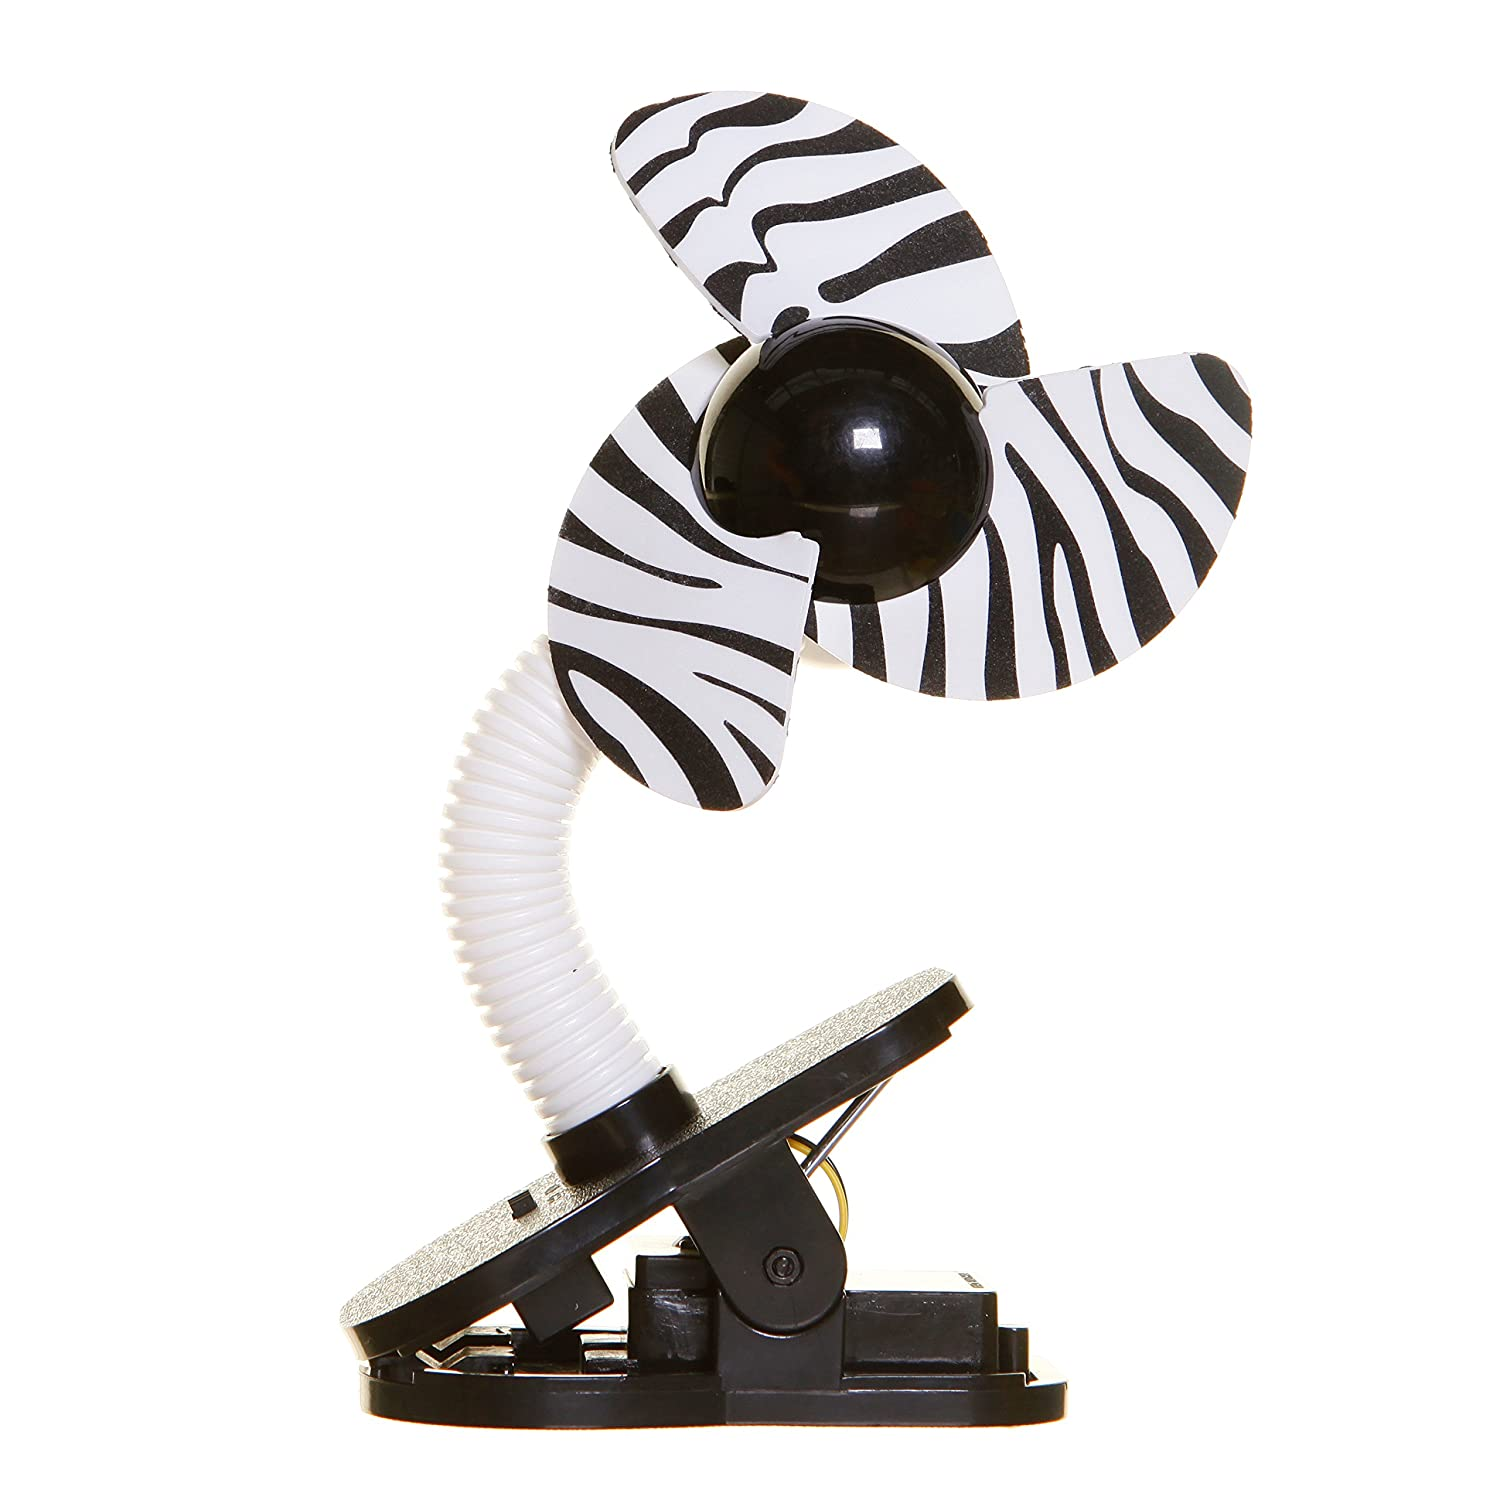 Tee-Zed Clip-On Fan Great for the Beach, Pool, Camping, Work, Lounging or Just Chillin'! - Tiger Design Dreambaby T06